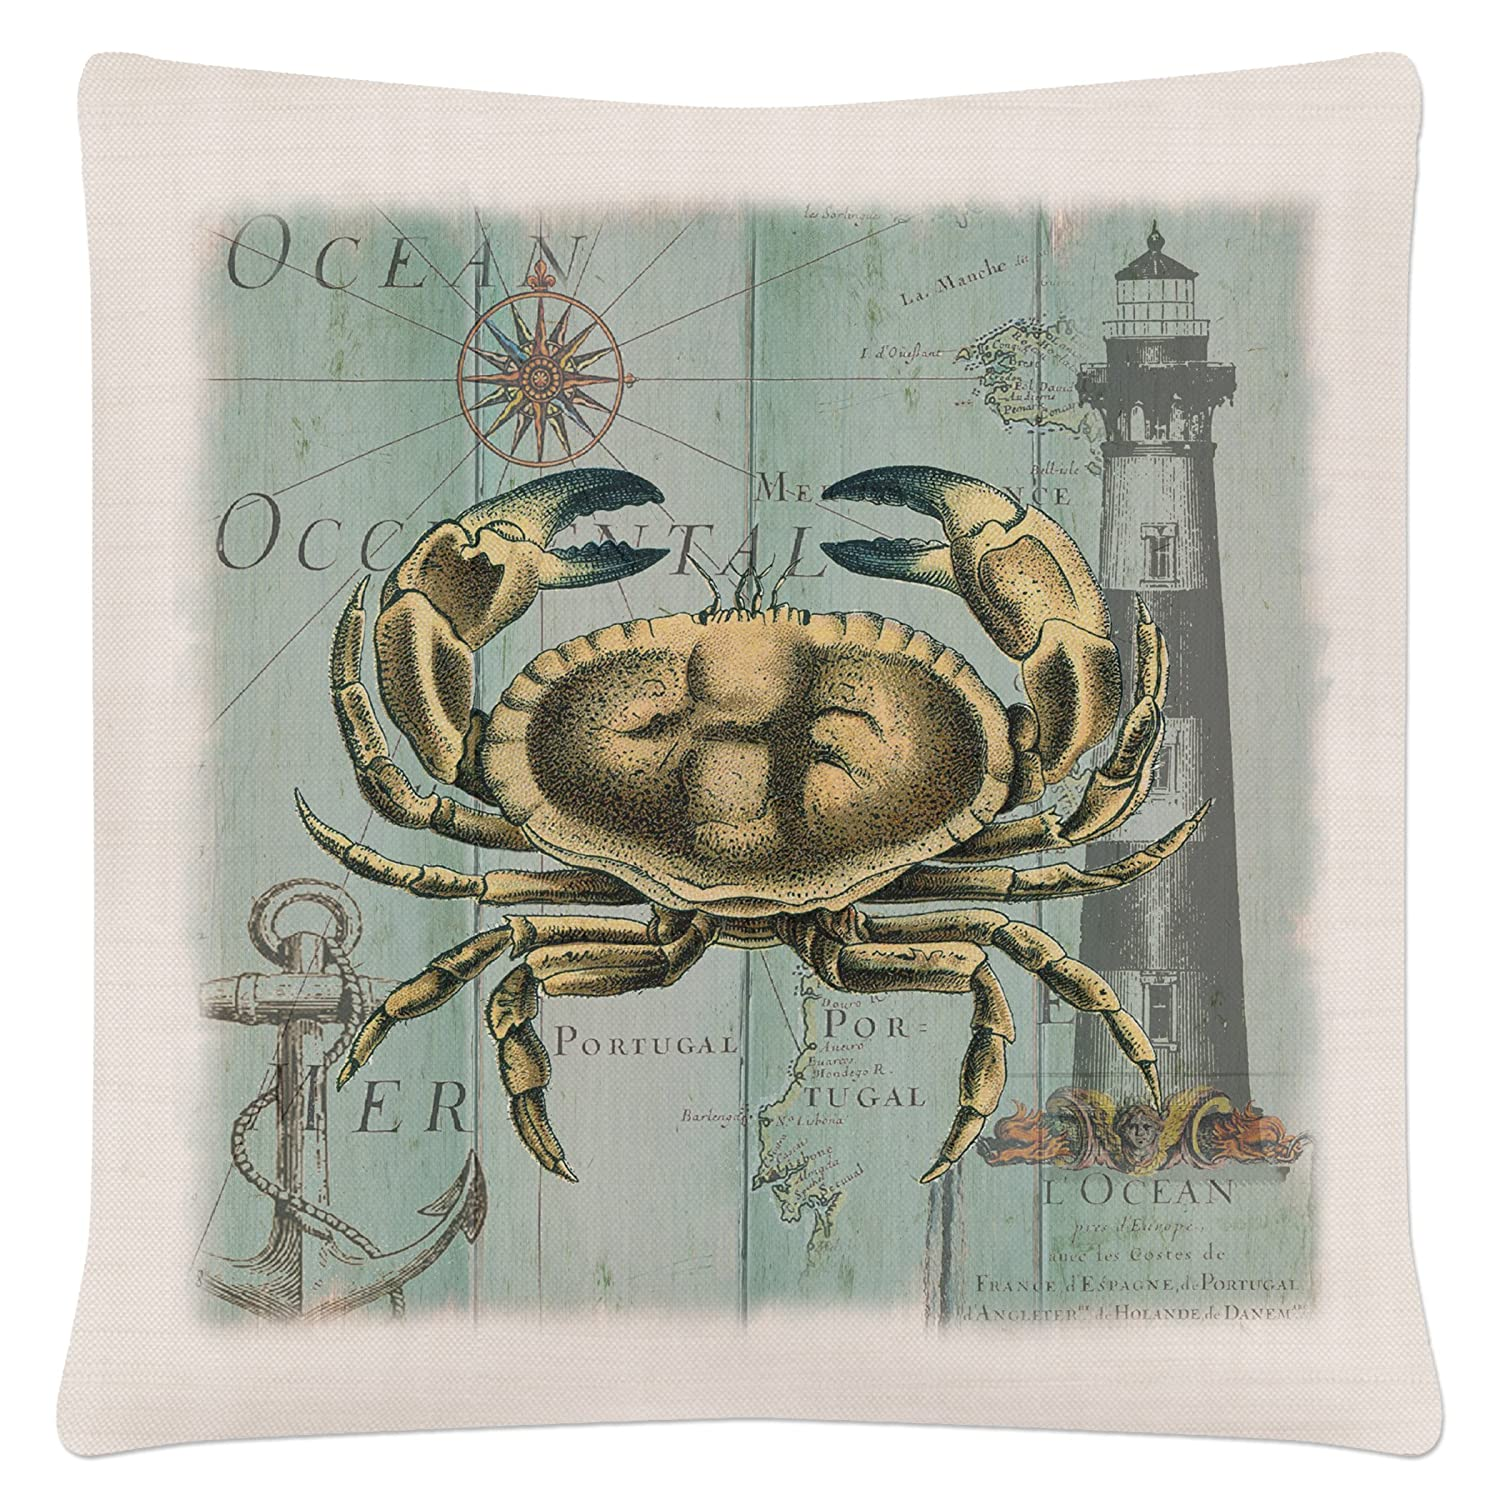 Pillow Crab Heritage Lace Coastal Collage 18 X 18 Oyster